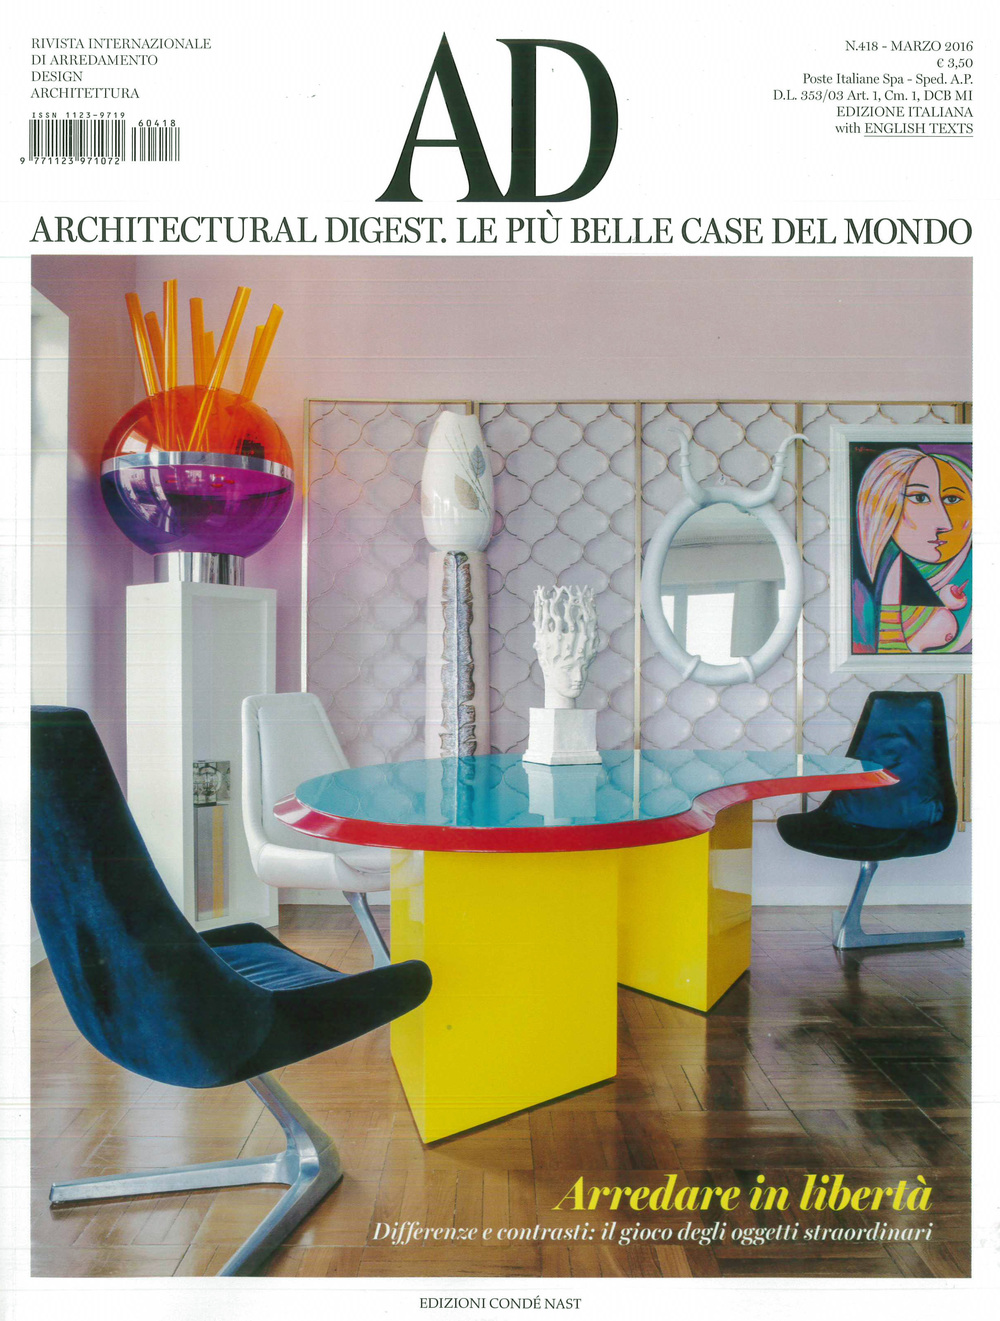 We Are Delighted To Be Featured In The Latest Issue Of Architectural Digest,  Italy With Our Project Le Grand Restaurant By Jean François Piège In Paris.